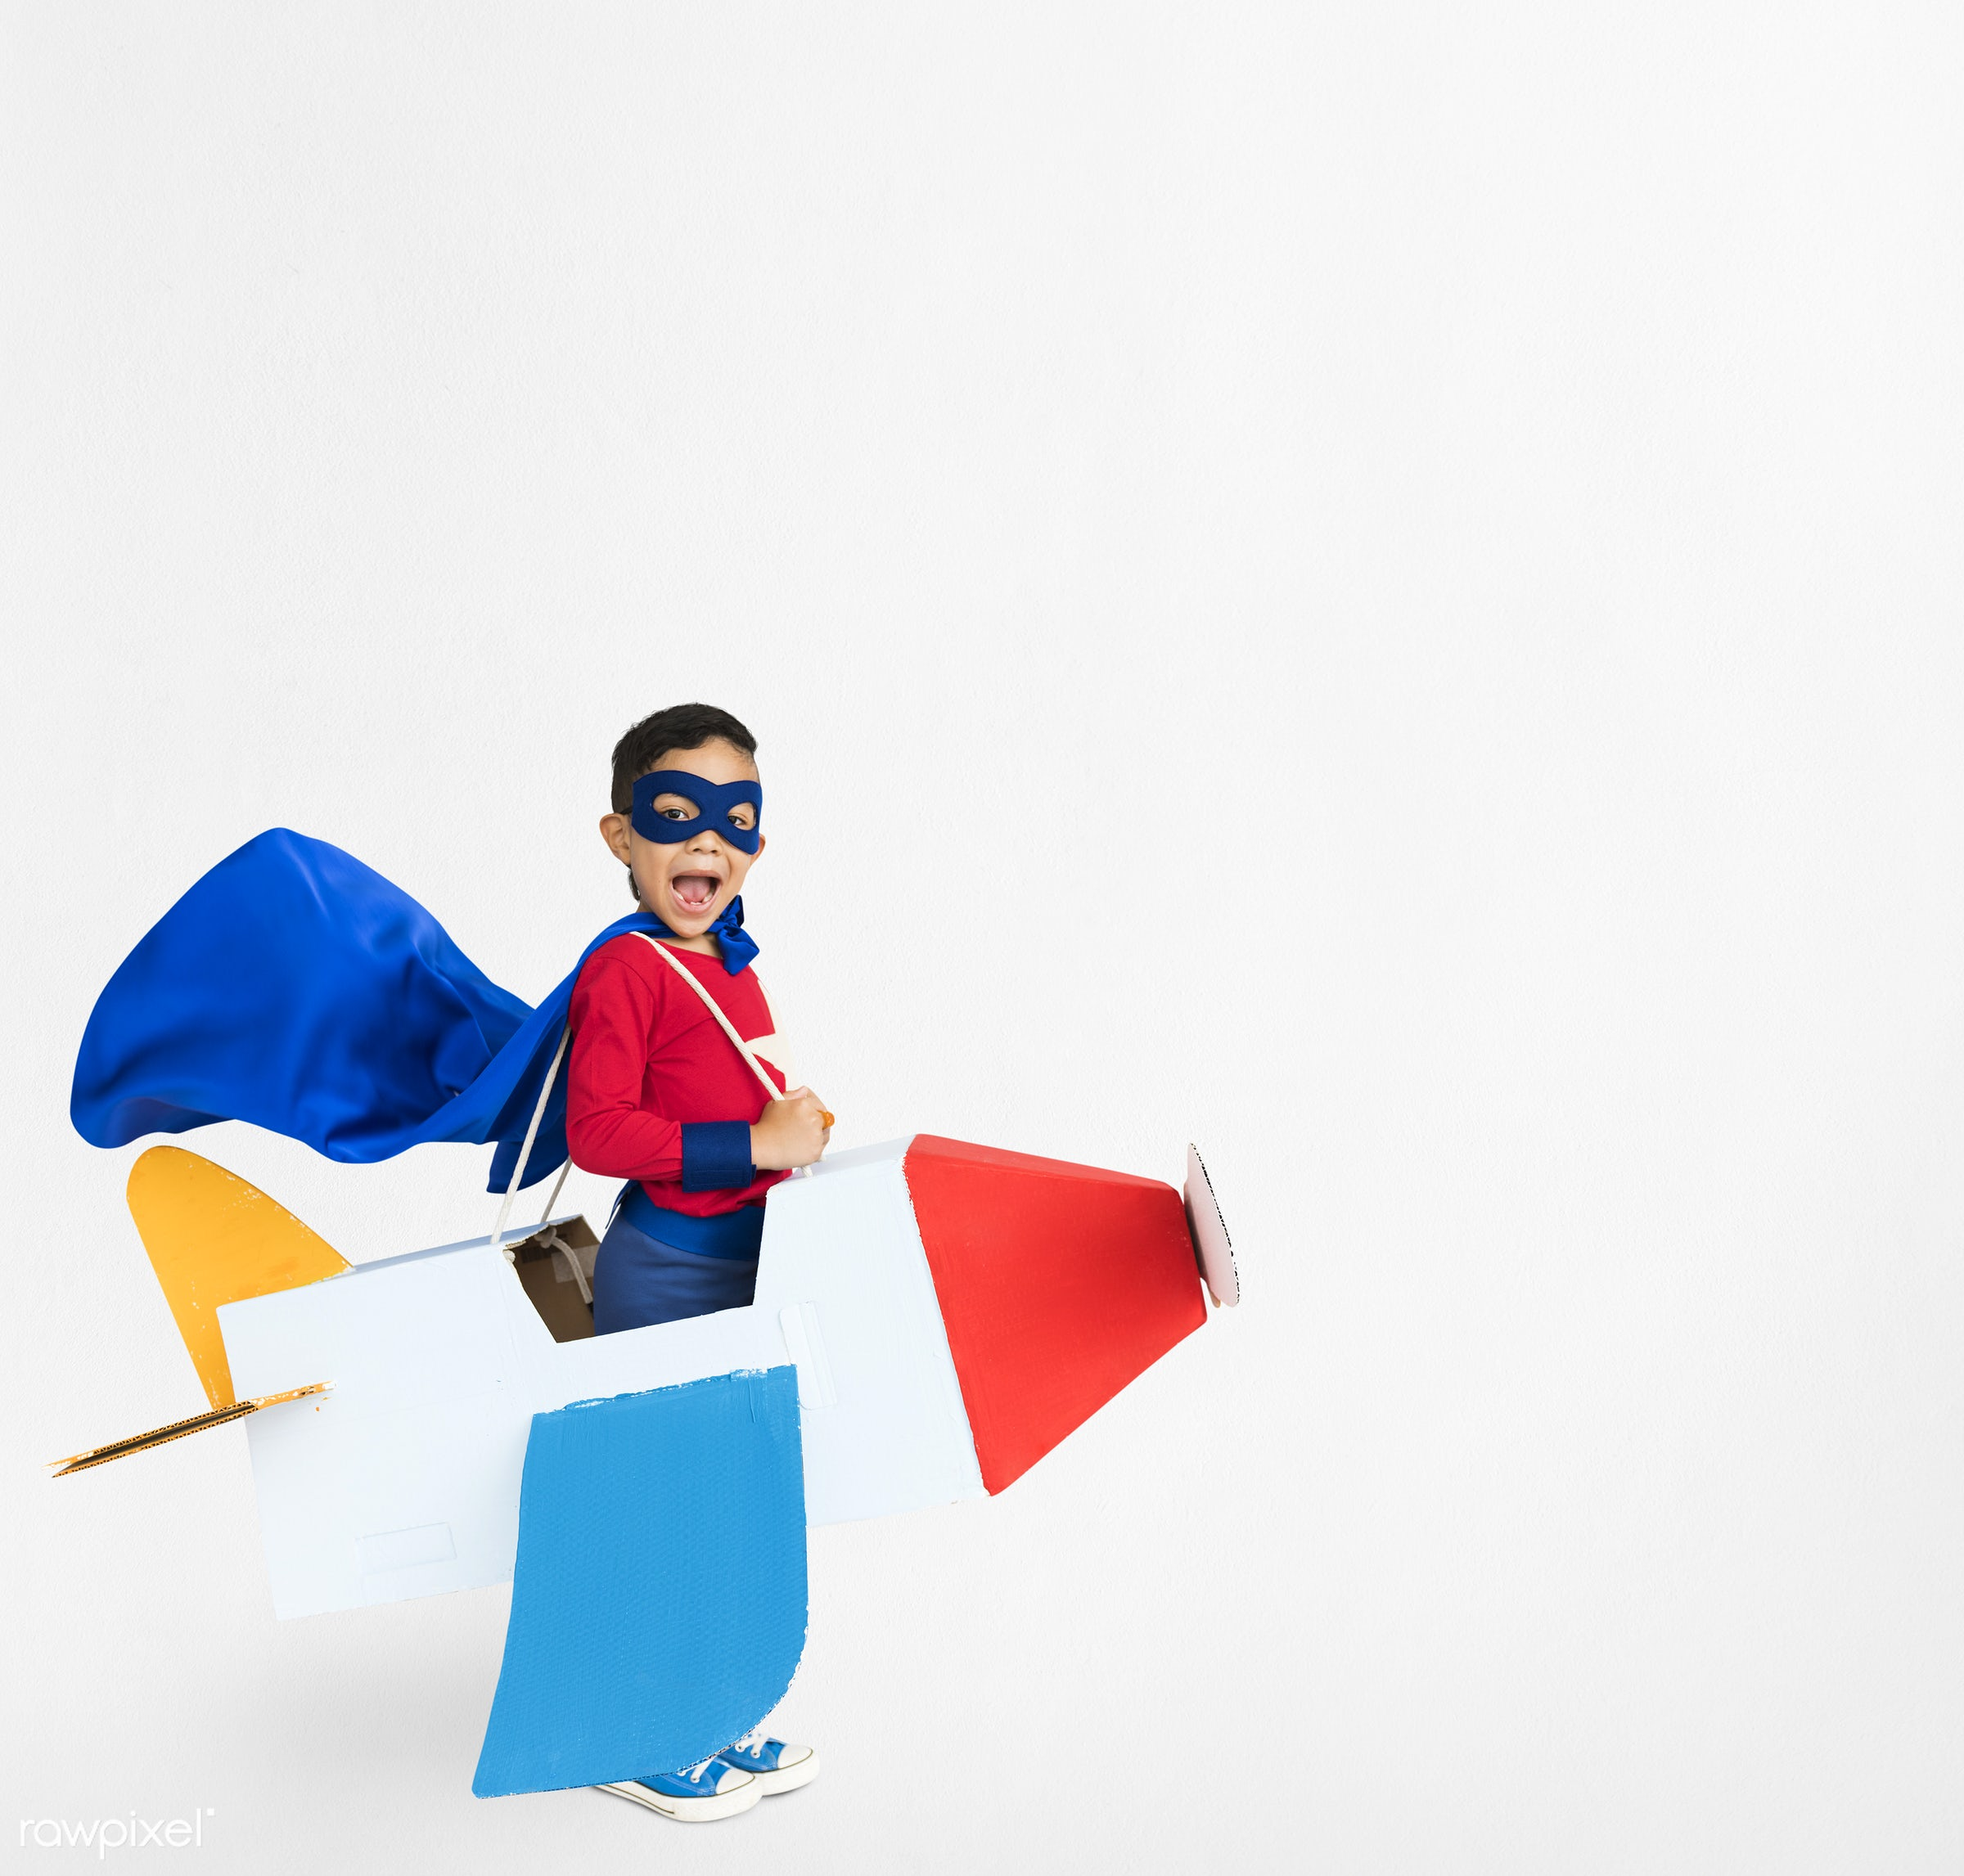 studio, expression, person, mask, people, kid, solo, childhood, smile, cheerful, smiling, isolated, airplane, white,...